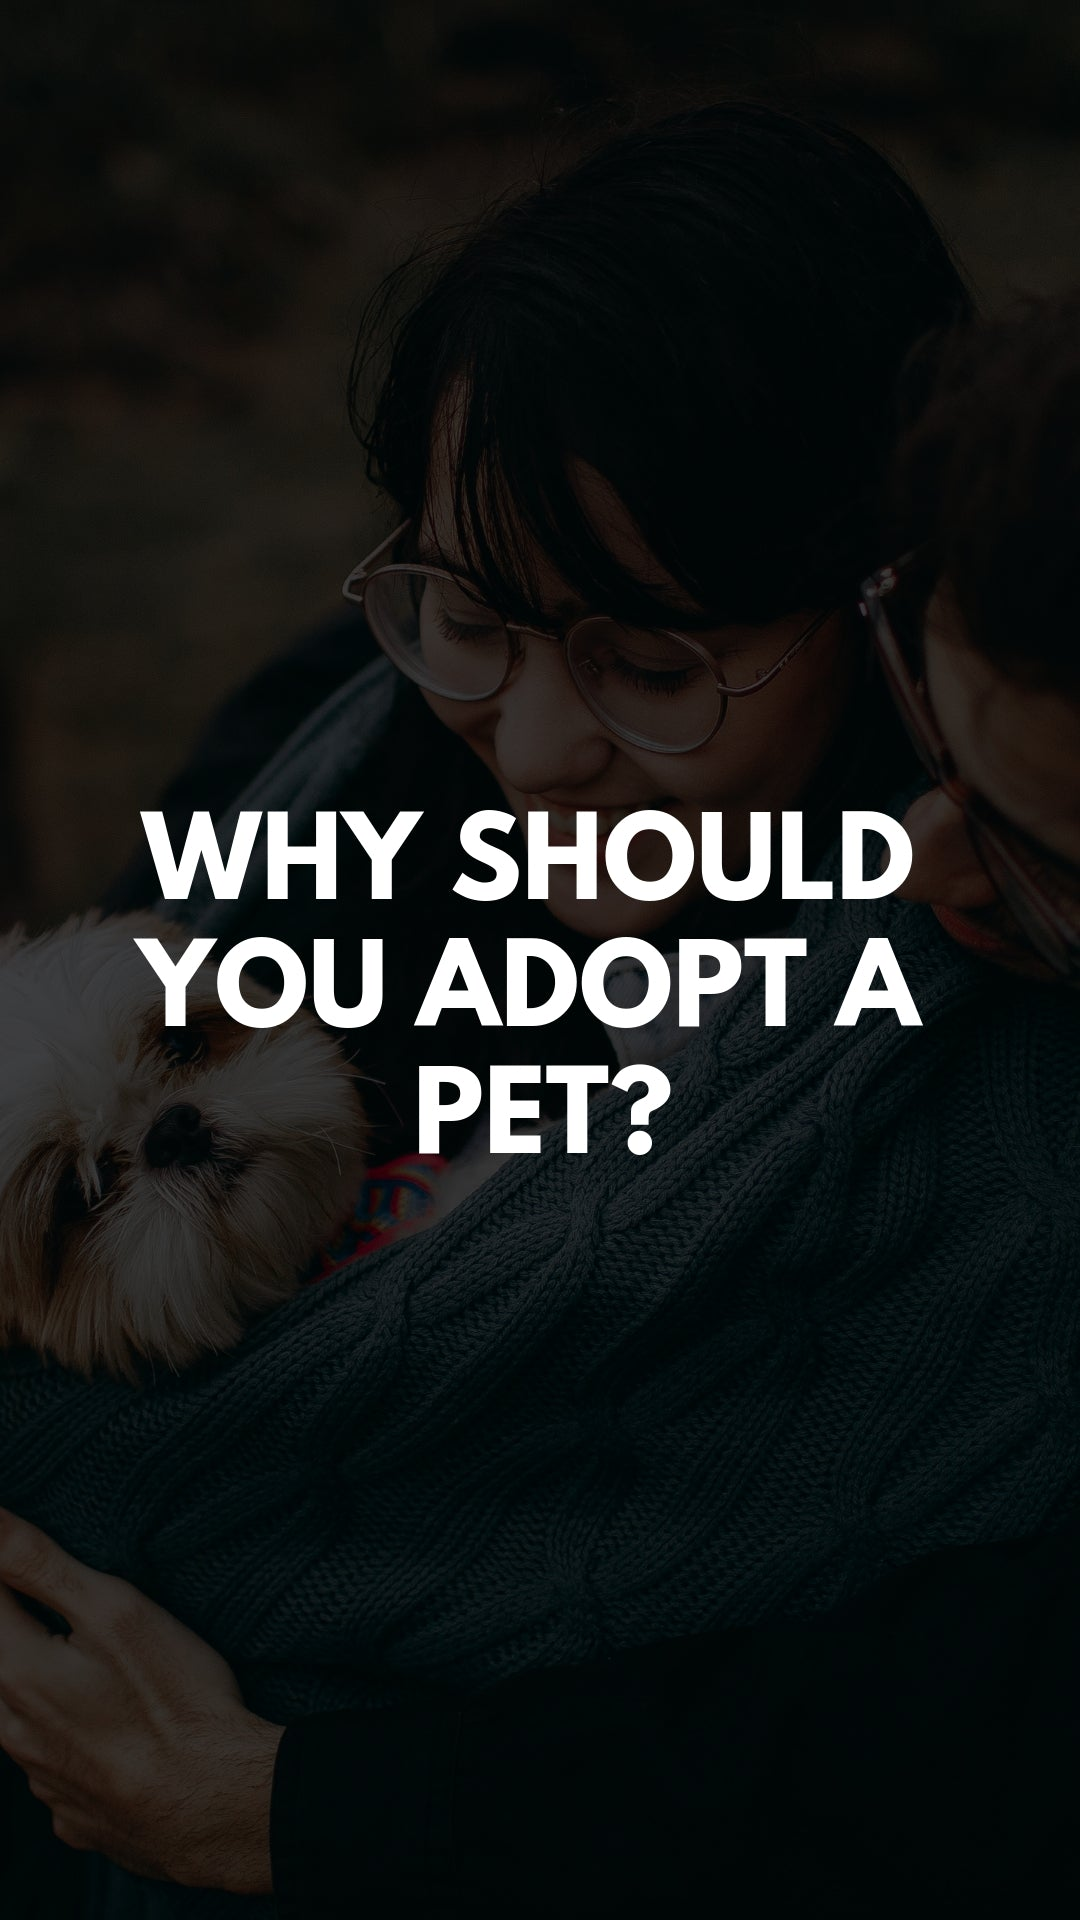 WHY SHOULD YOU ADOPT A PET?